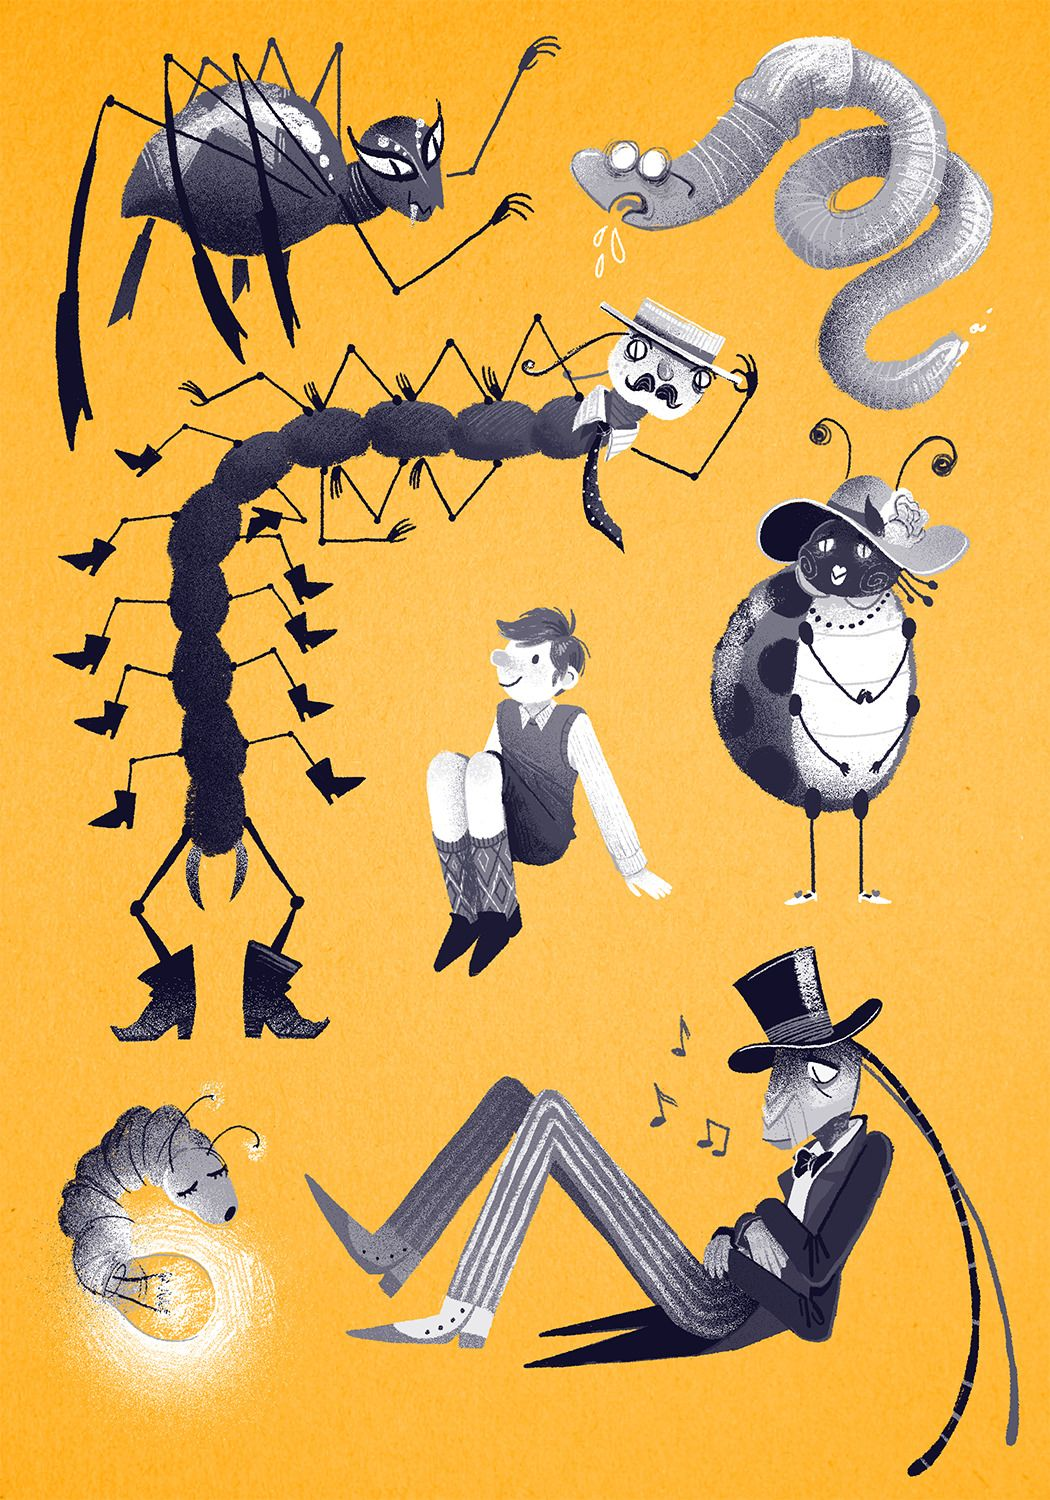 Some Drawings For A James And The Giant Peach Cover I Probably Won T Use